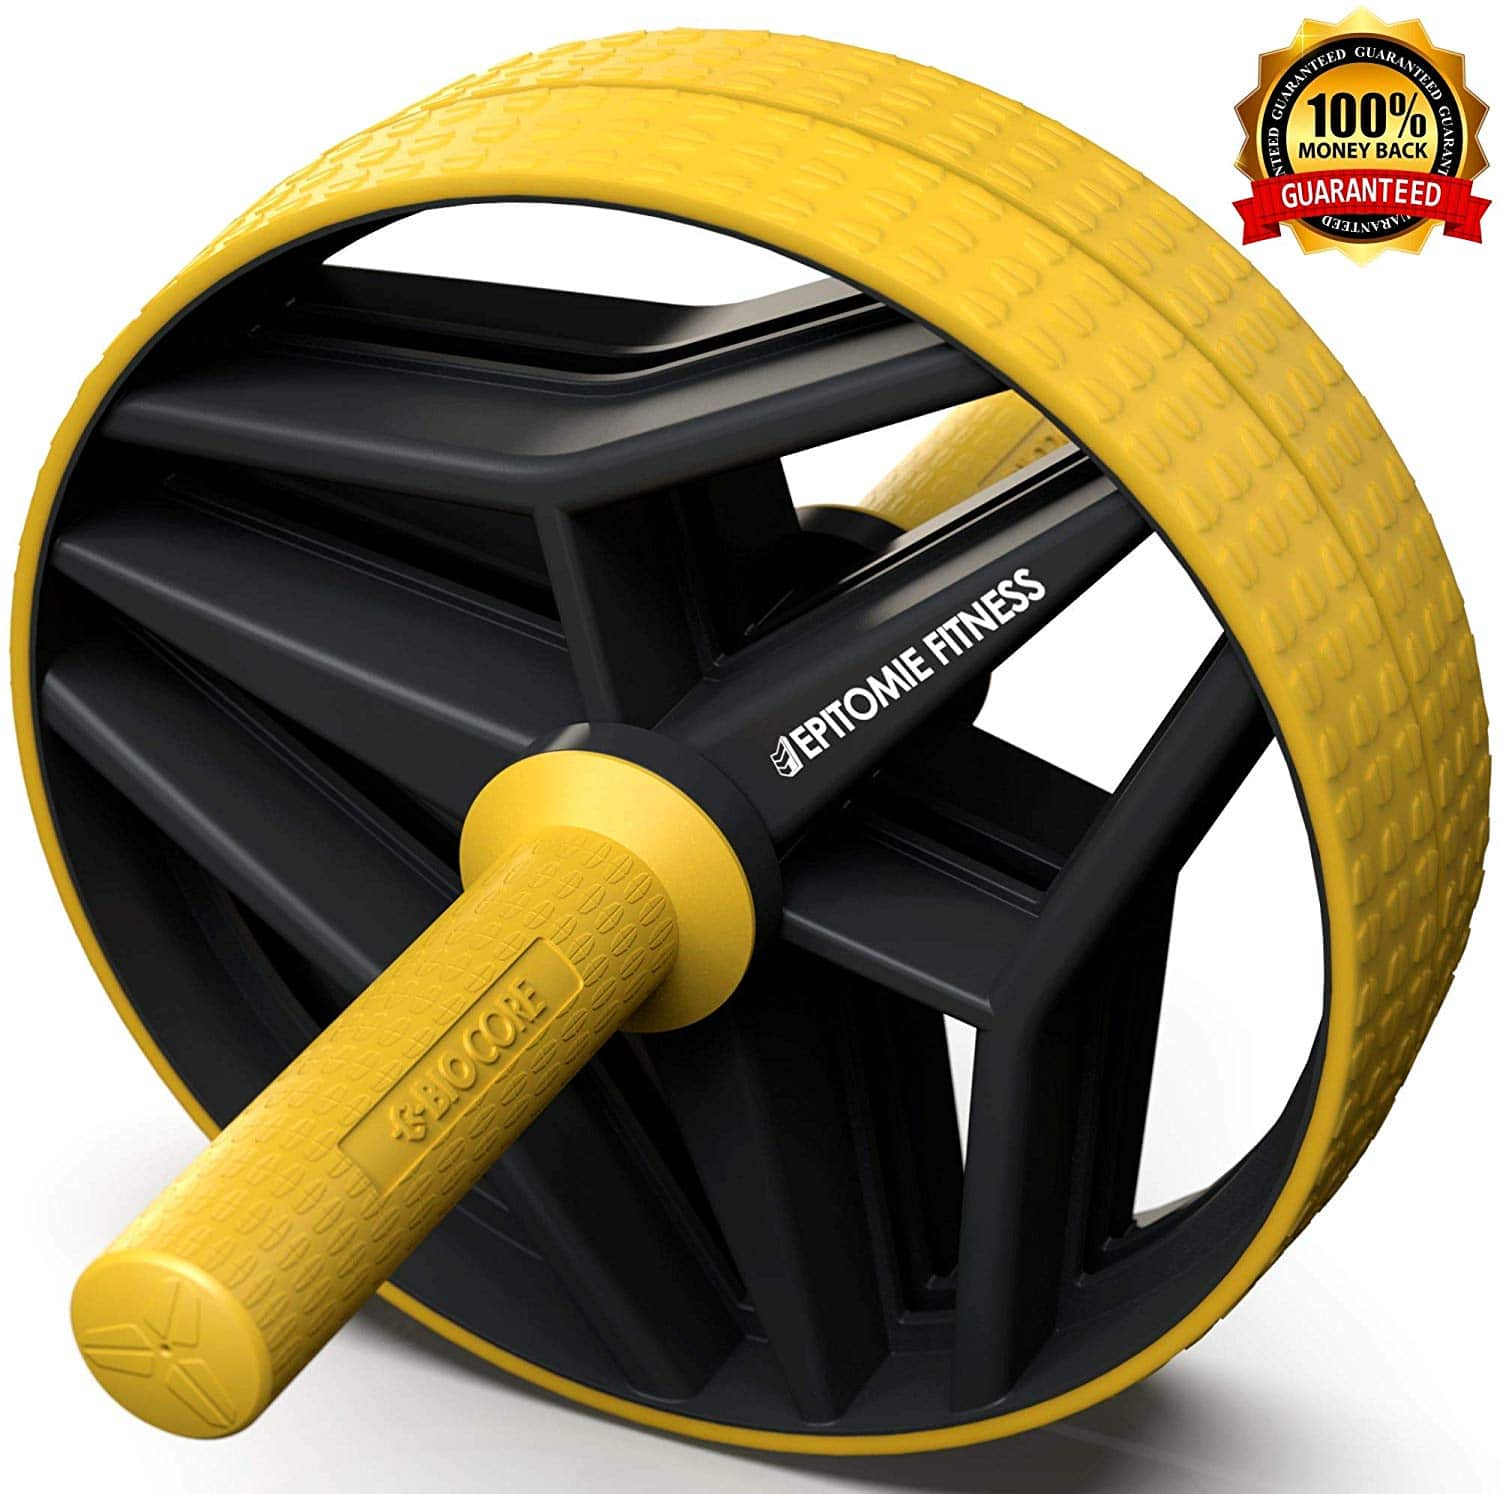 Epitome fitness AB roller wheel